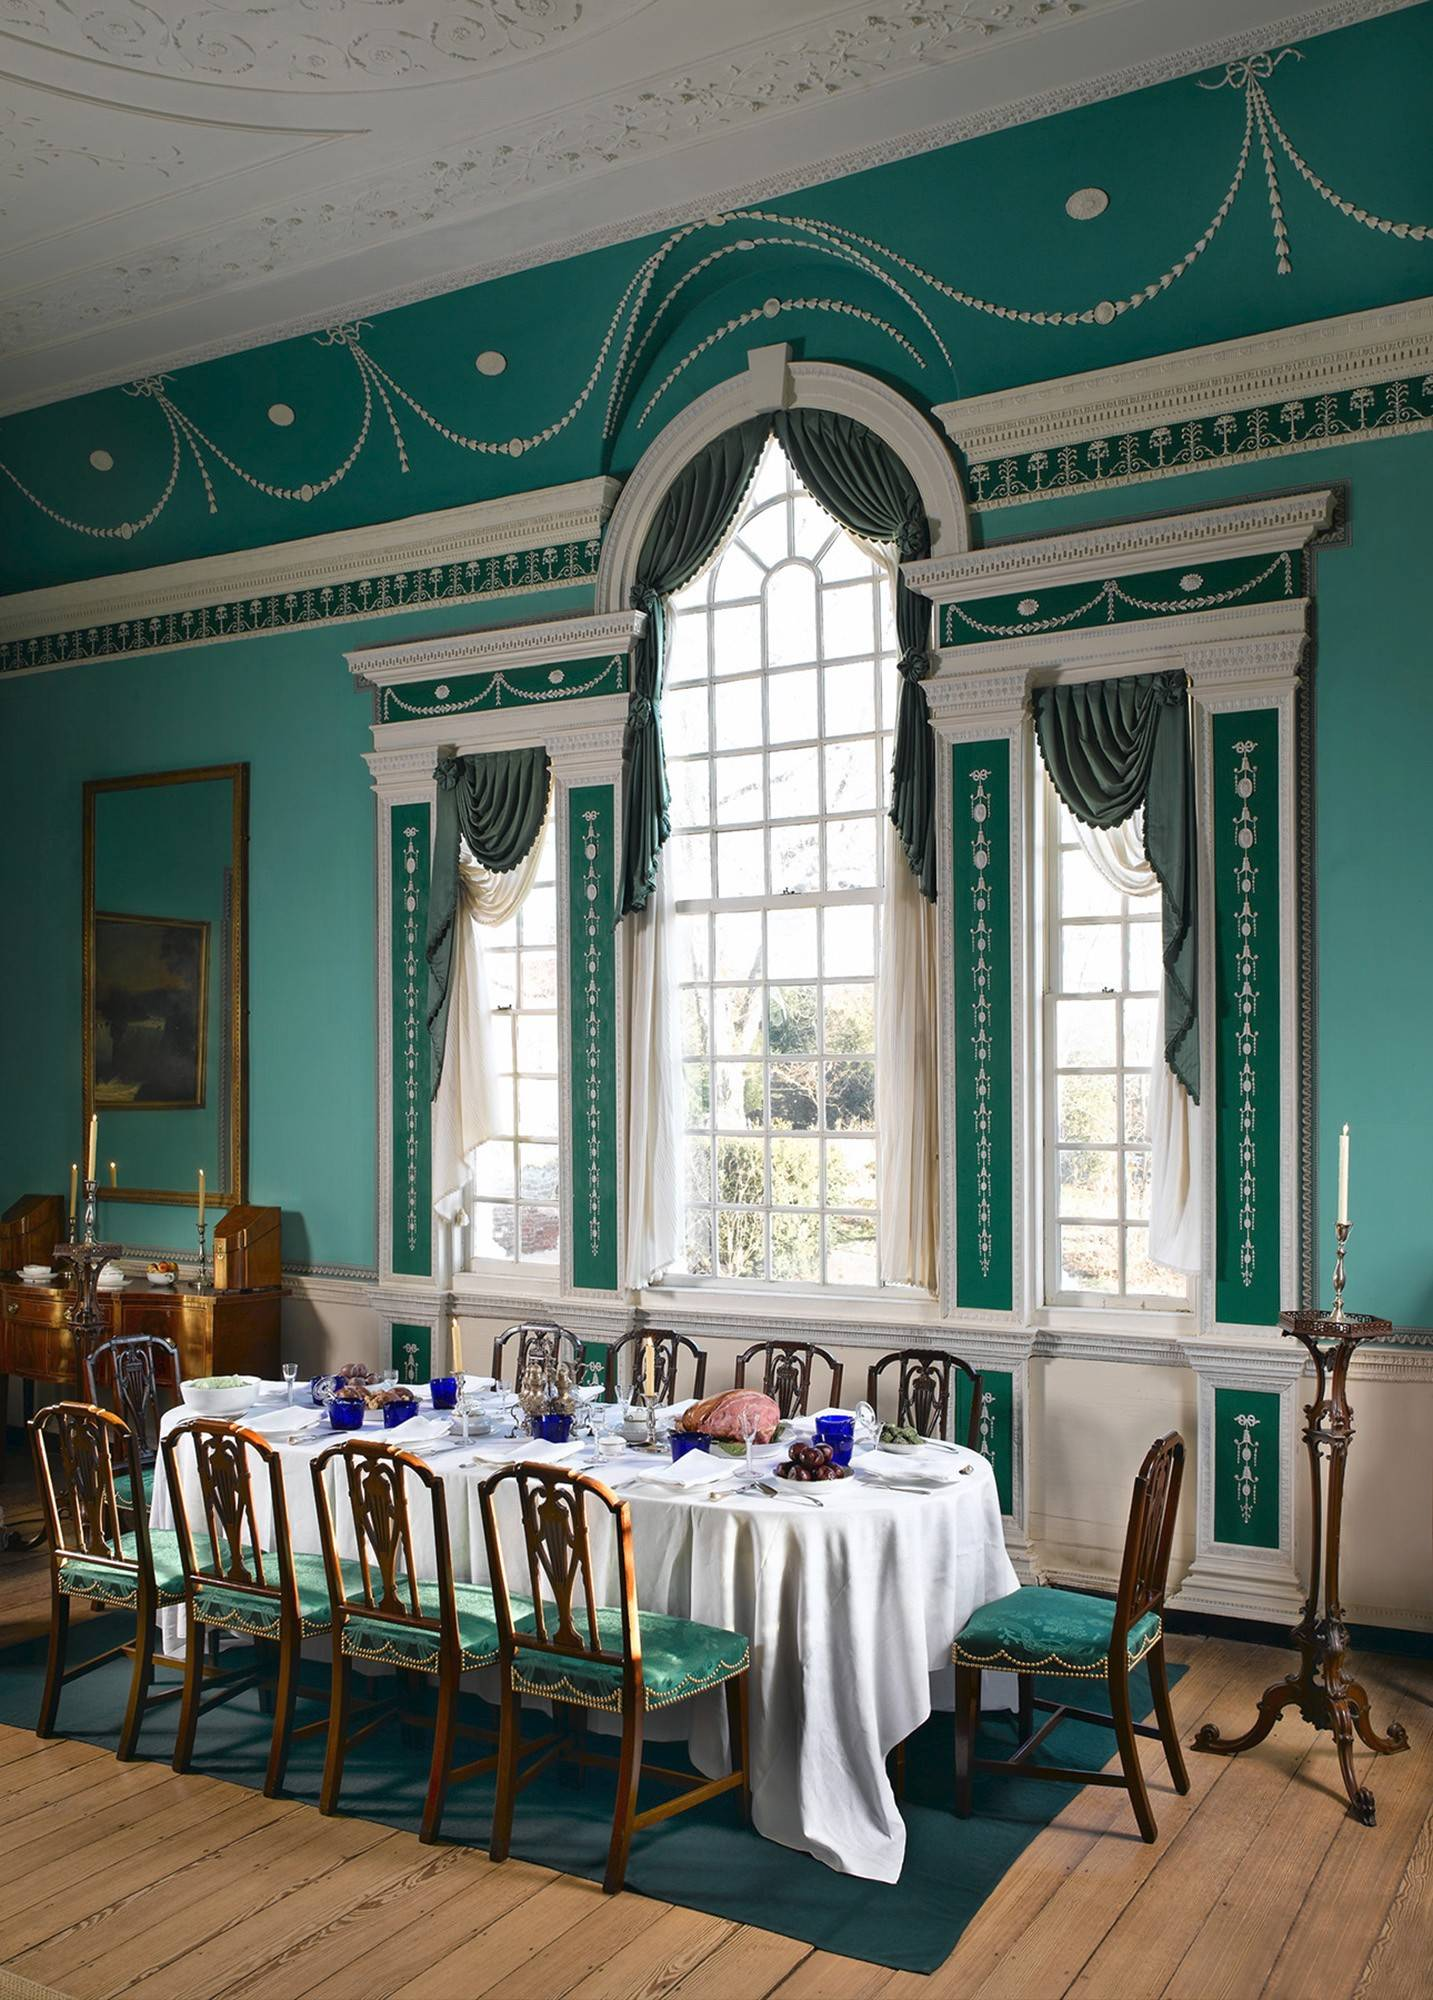 In a 2005 photo, the largest room in Mount Vernon, which has a grand Palladian window, is set up for dinner.